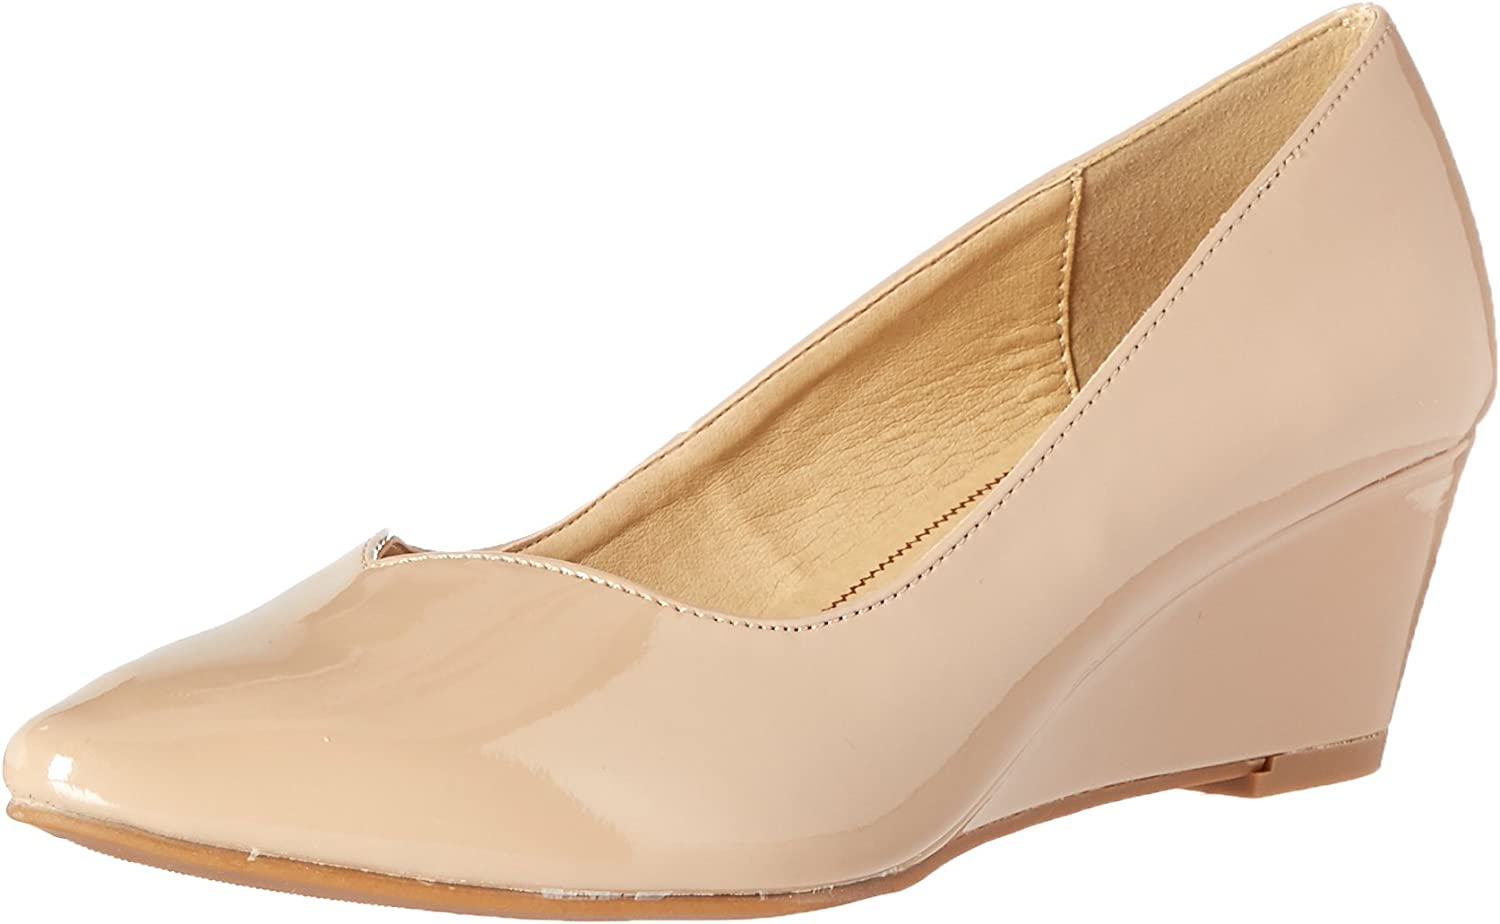 CL by Chinese Laundry Women's Tiara Wedge Pump